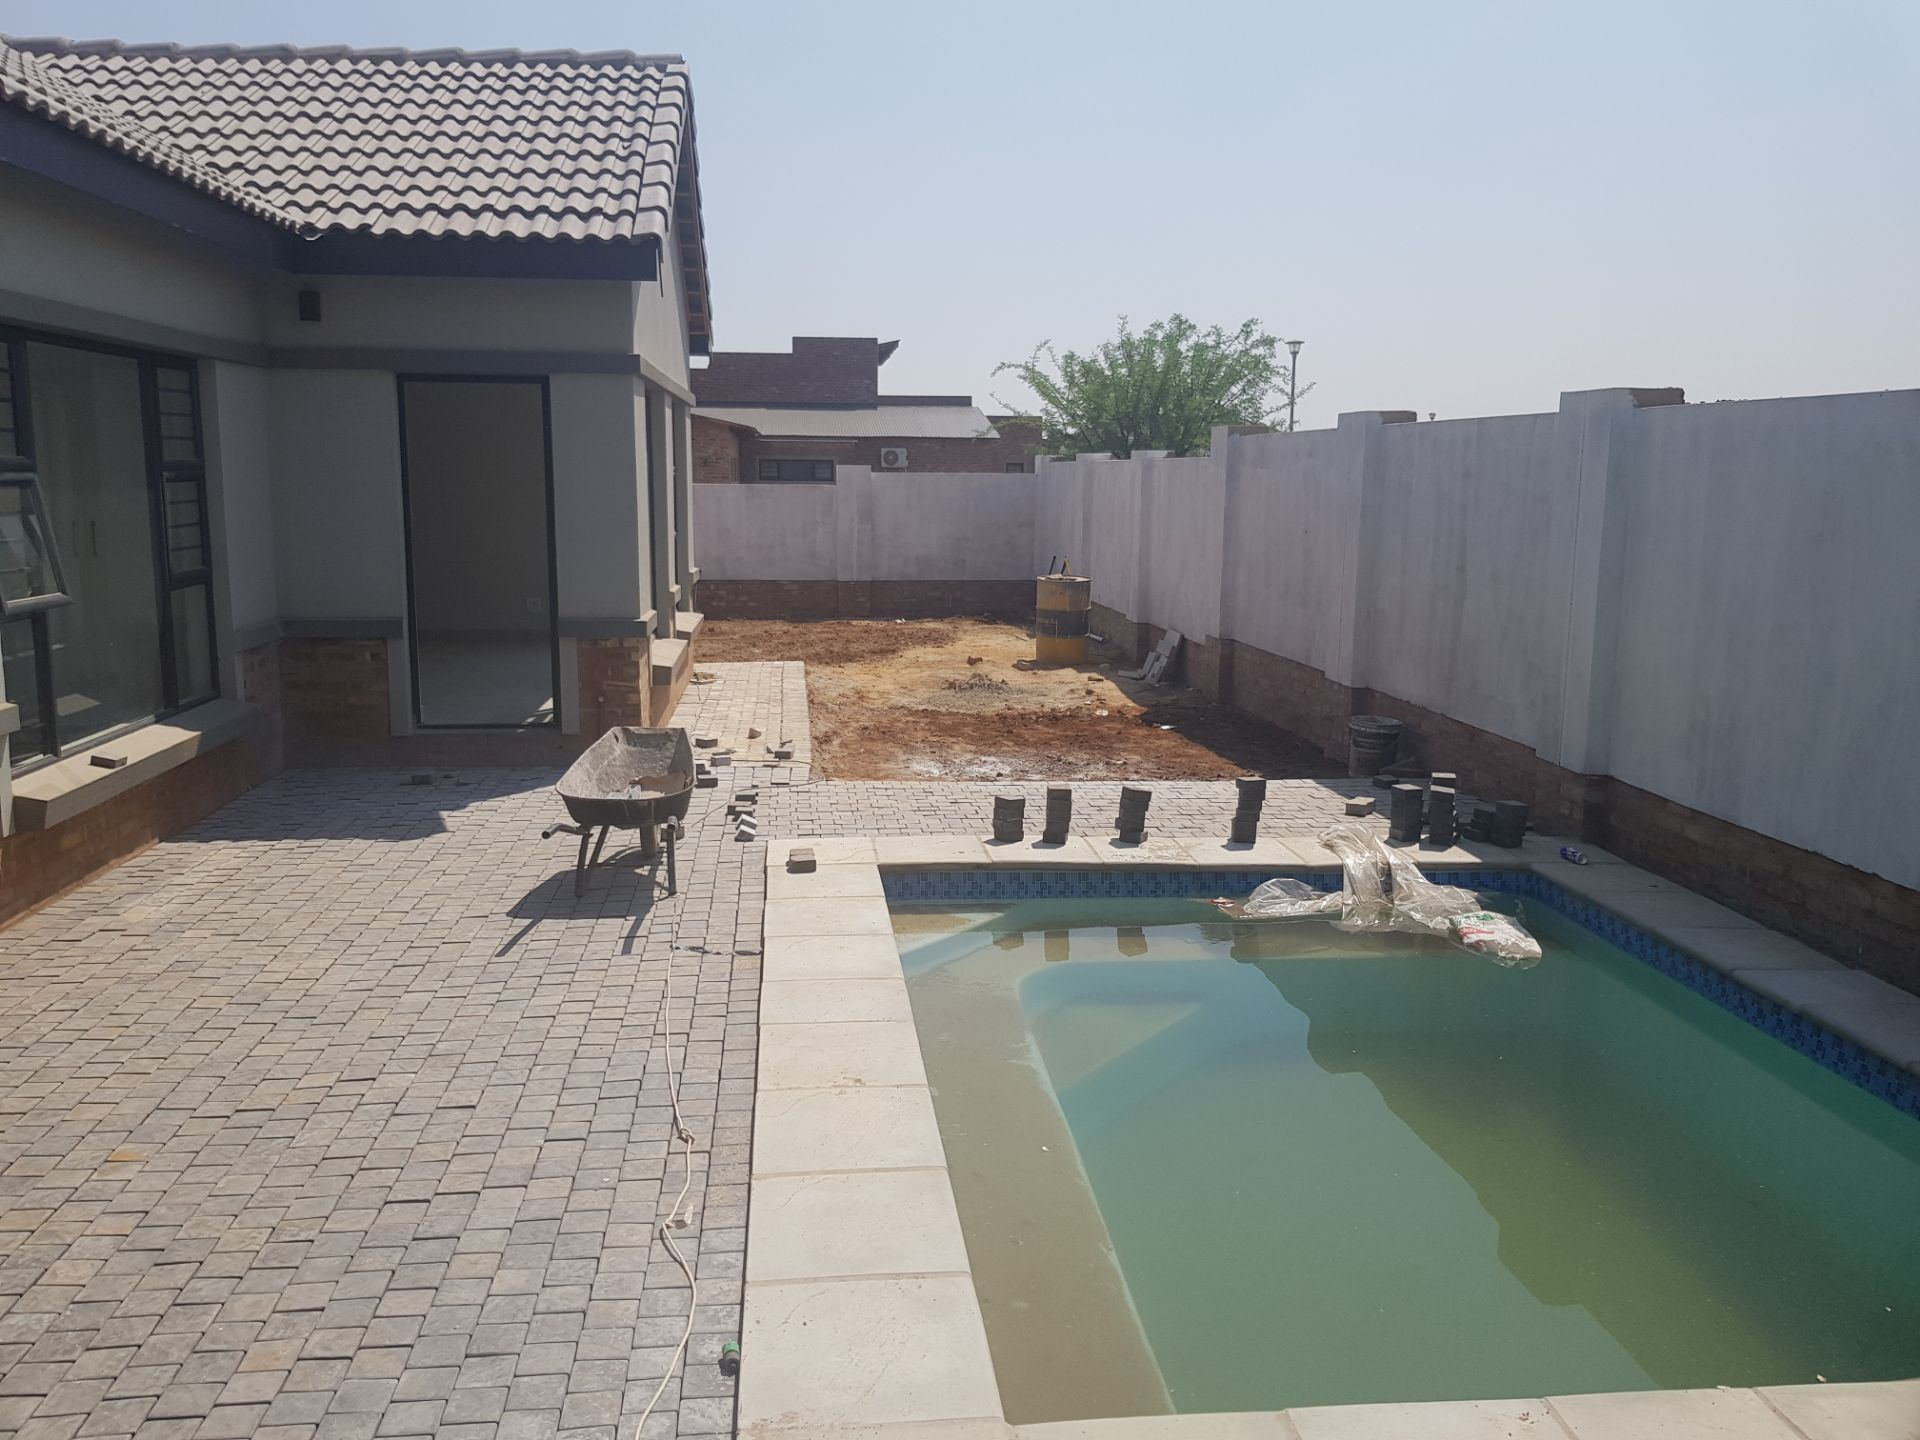 House in Lifestyle Estate - 20190920_130044.jpg